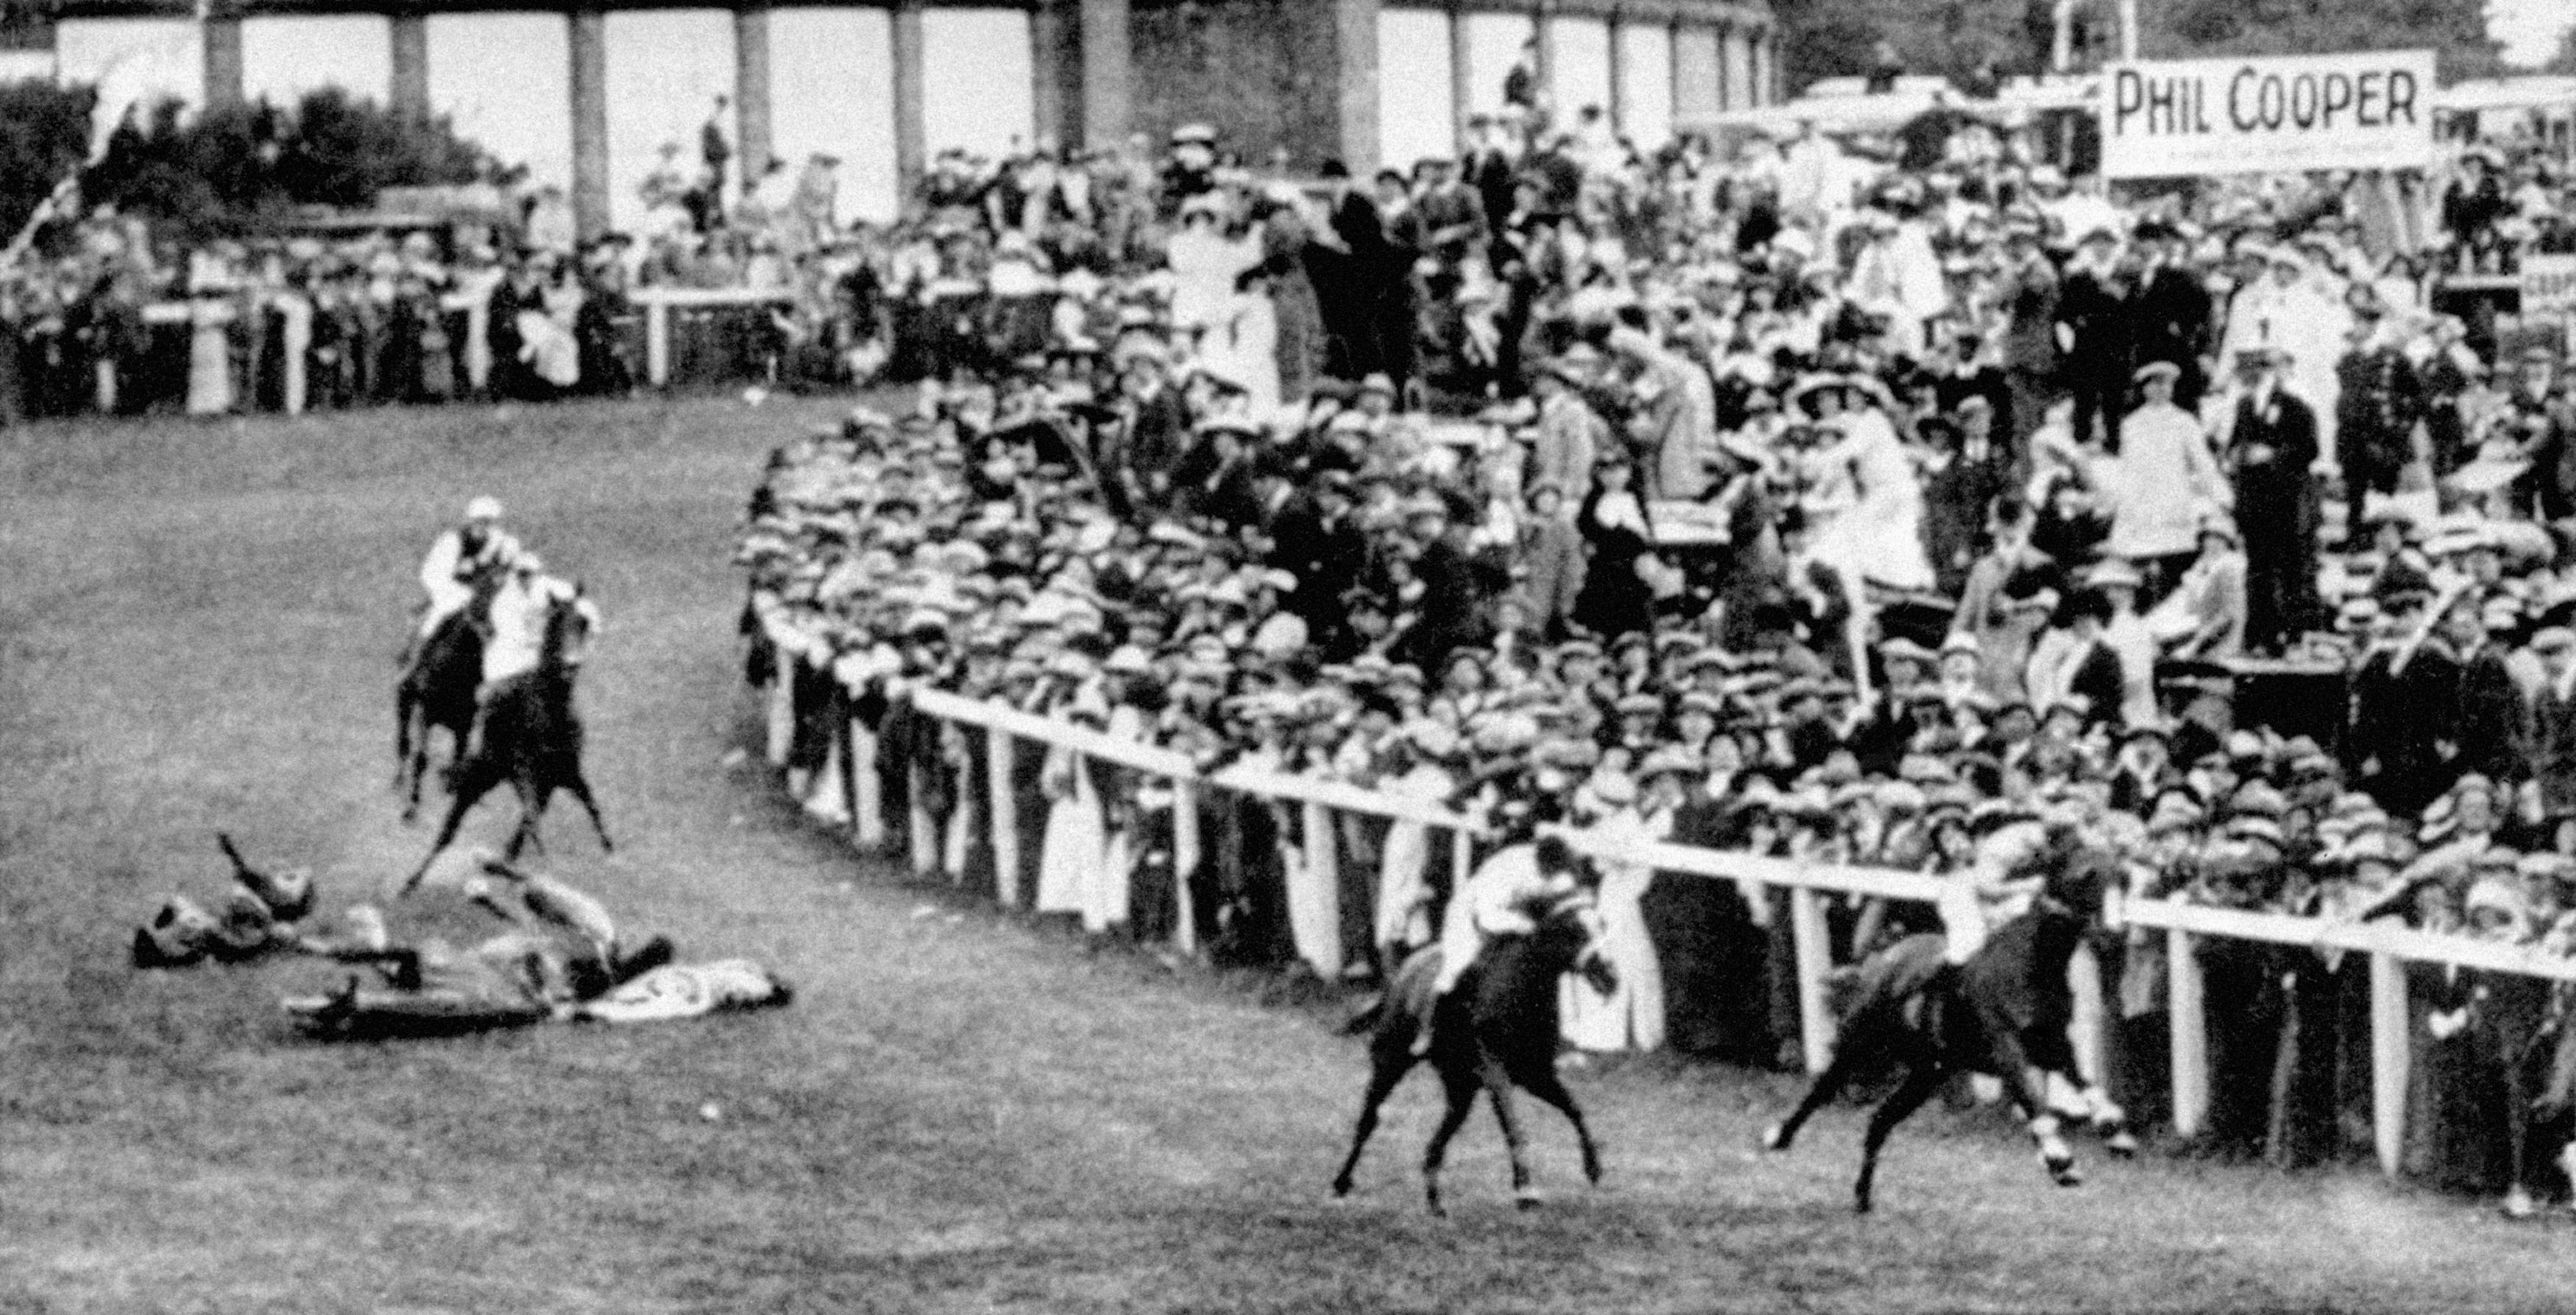 Suffragette Emily Davison after she was fatally injured by the King's horse during the Epsom Derby in 1913 (PA)